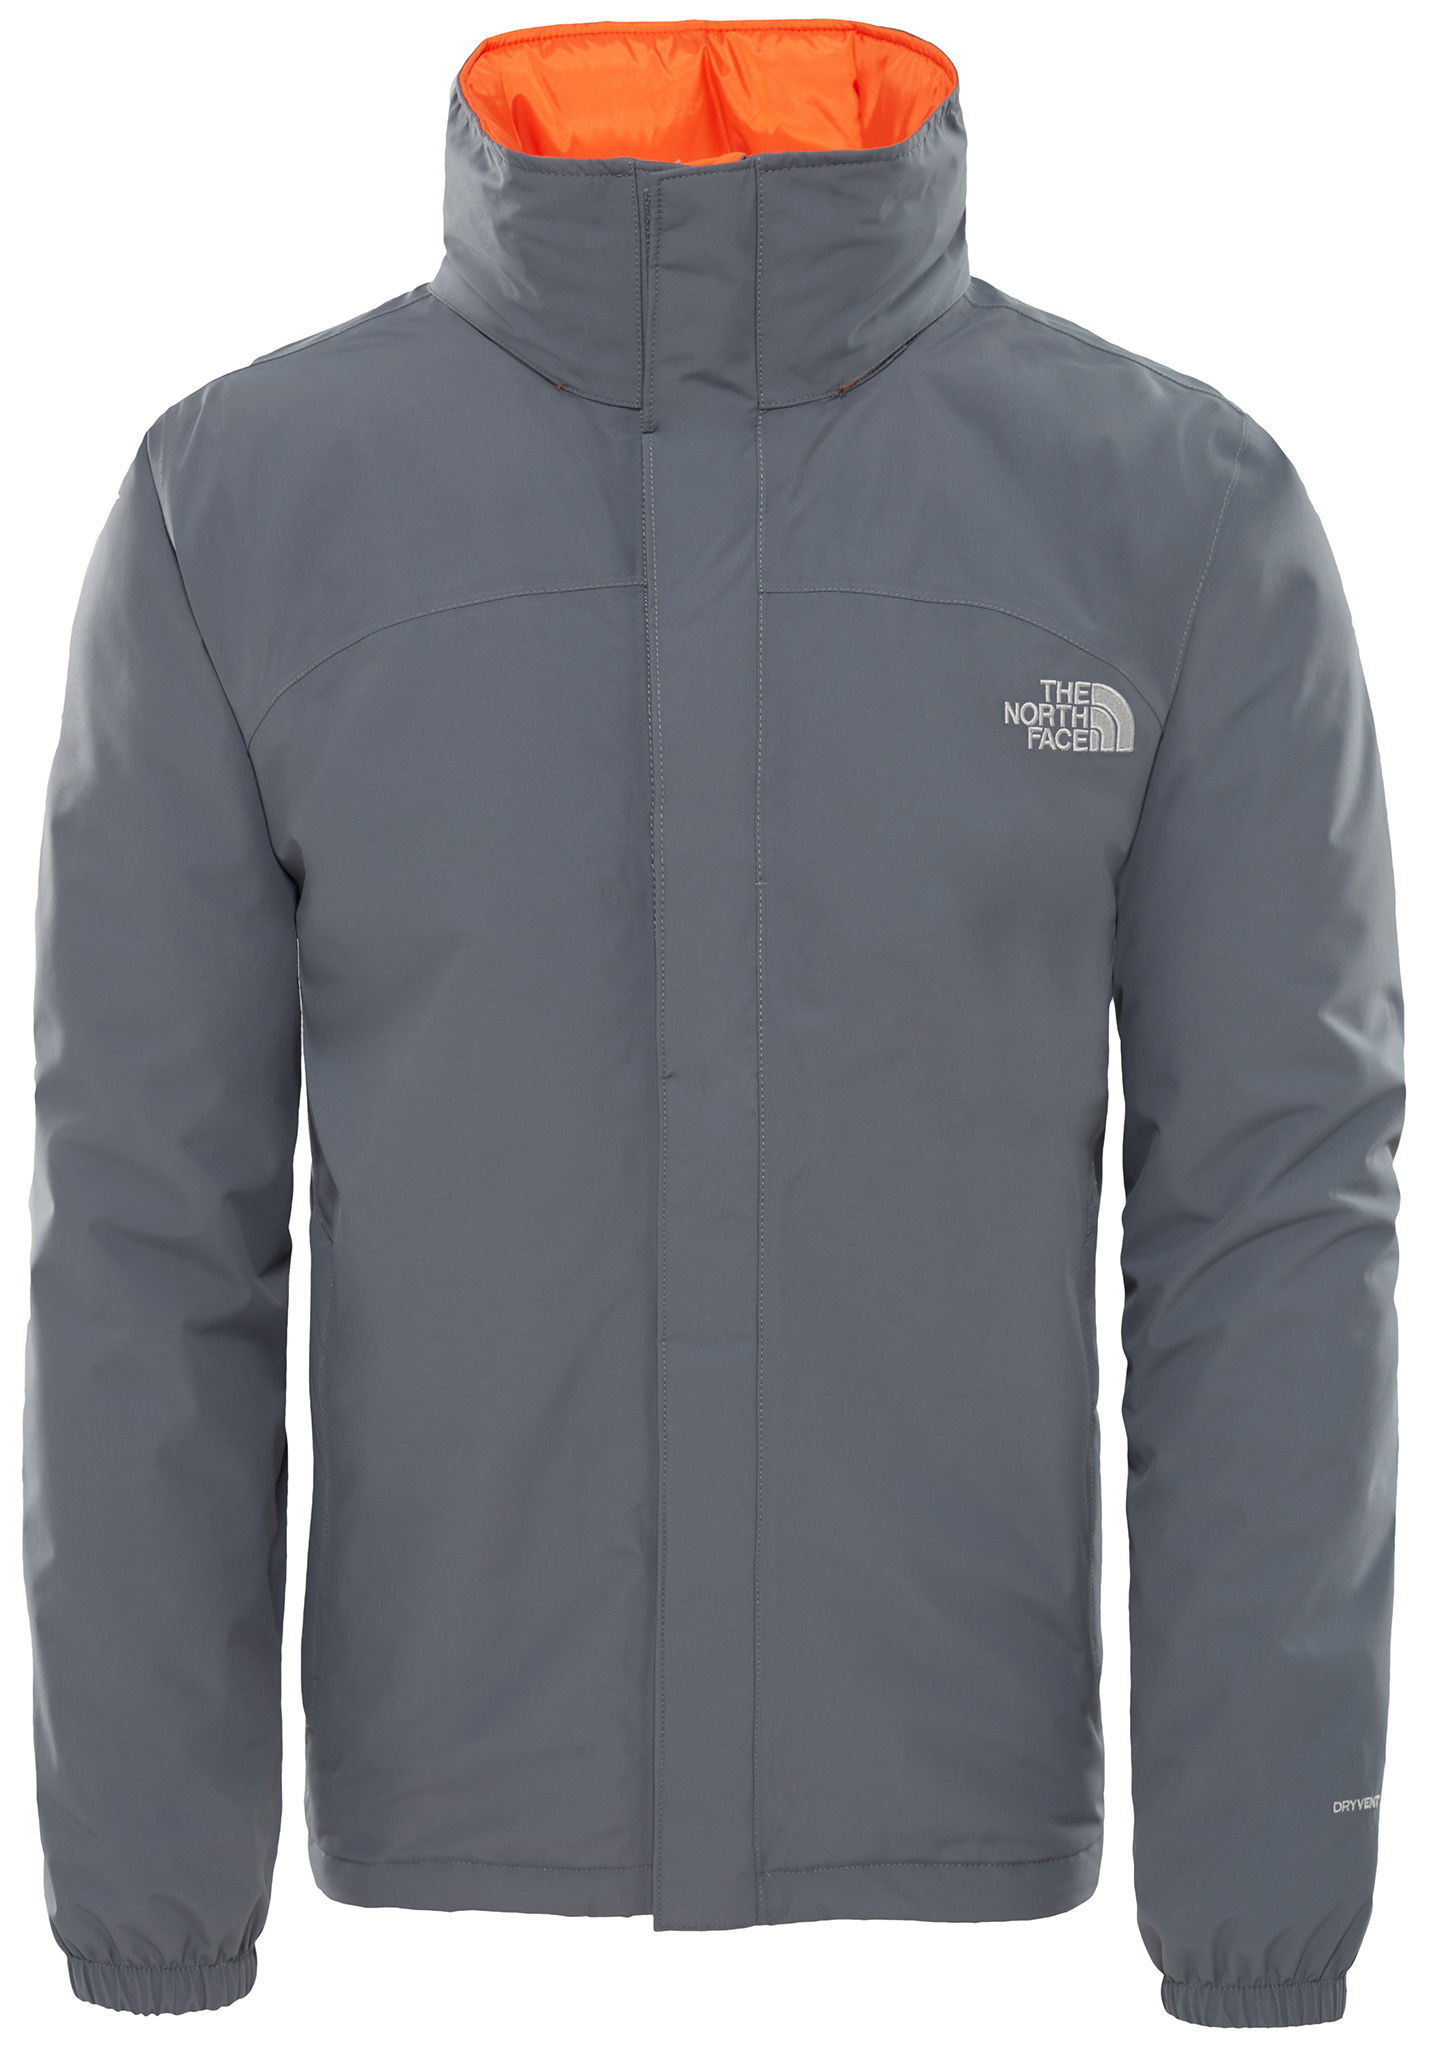 The North Face Jacke Herren